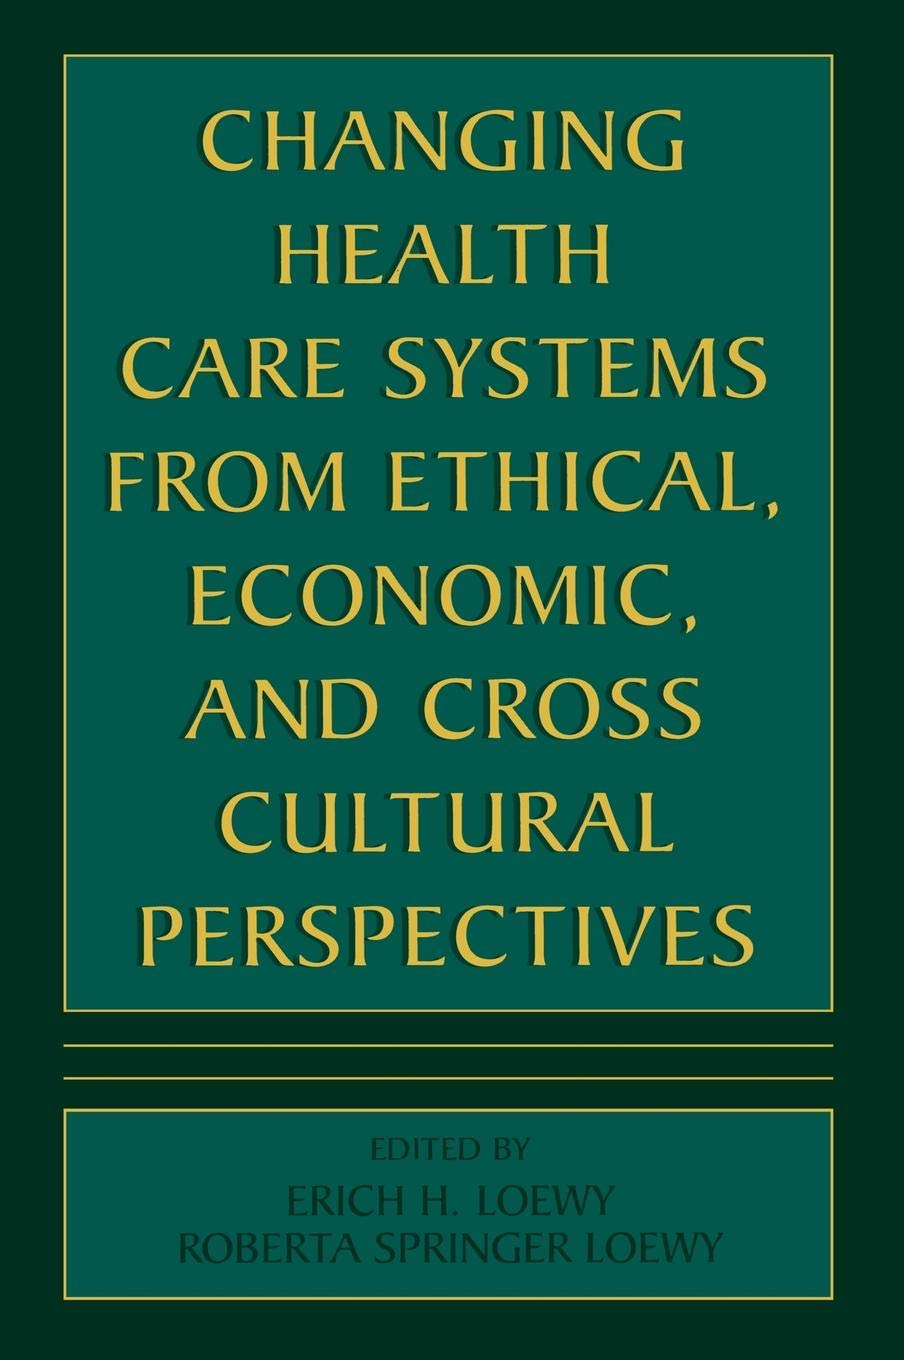 Download Changing Health Care Systems from Ethical, Economic, and Cross Cultural Perspectives pdf